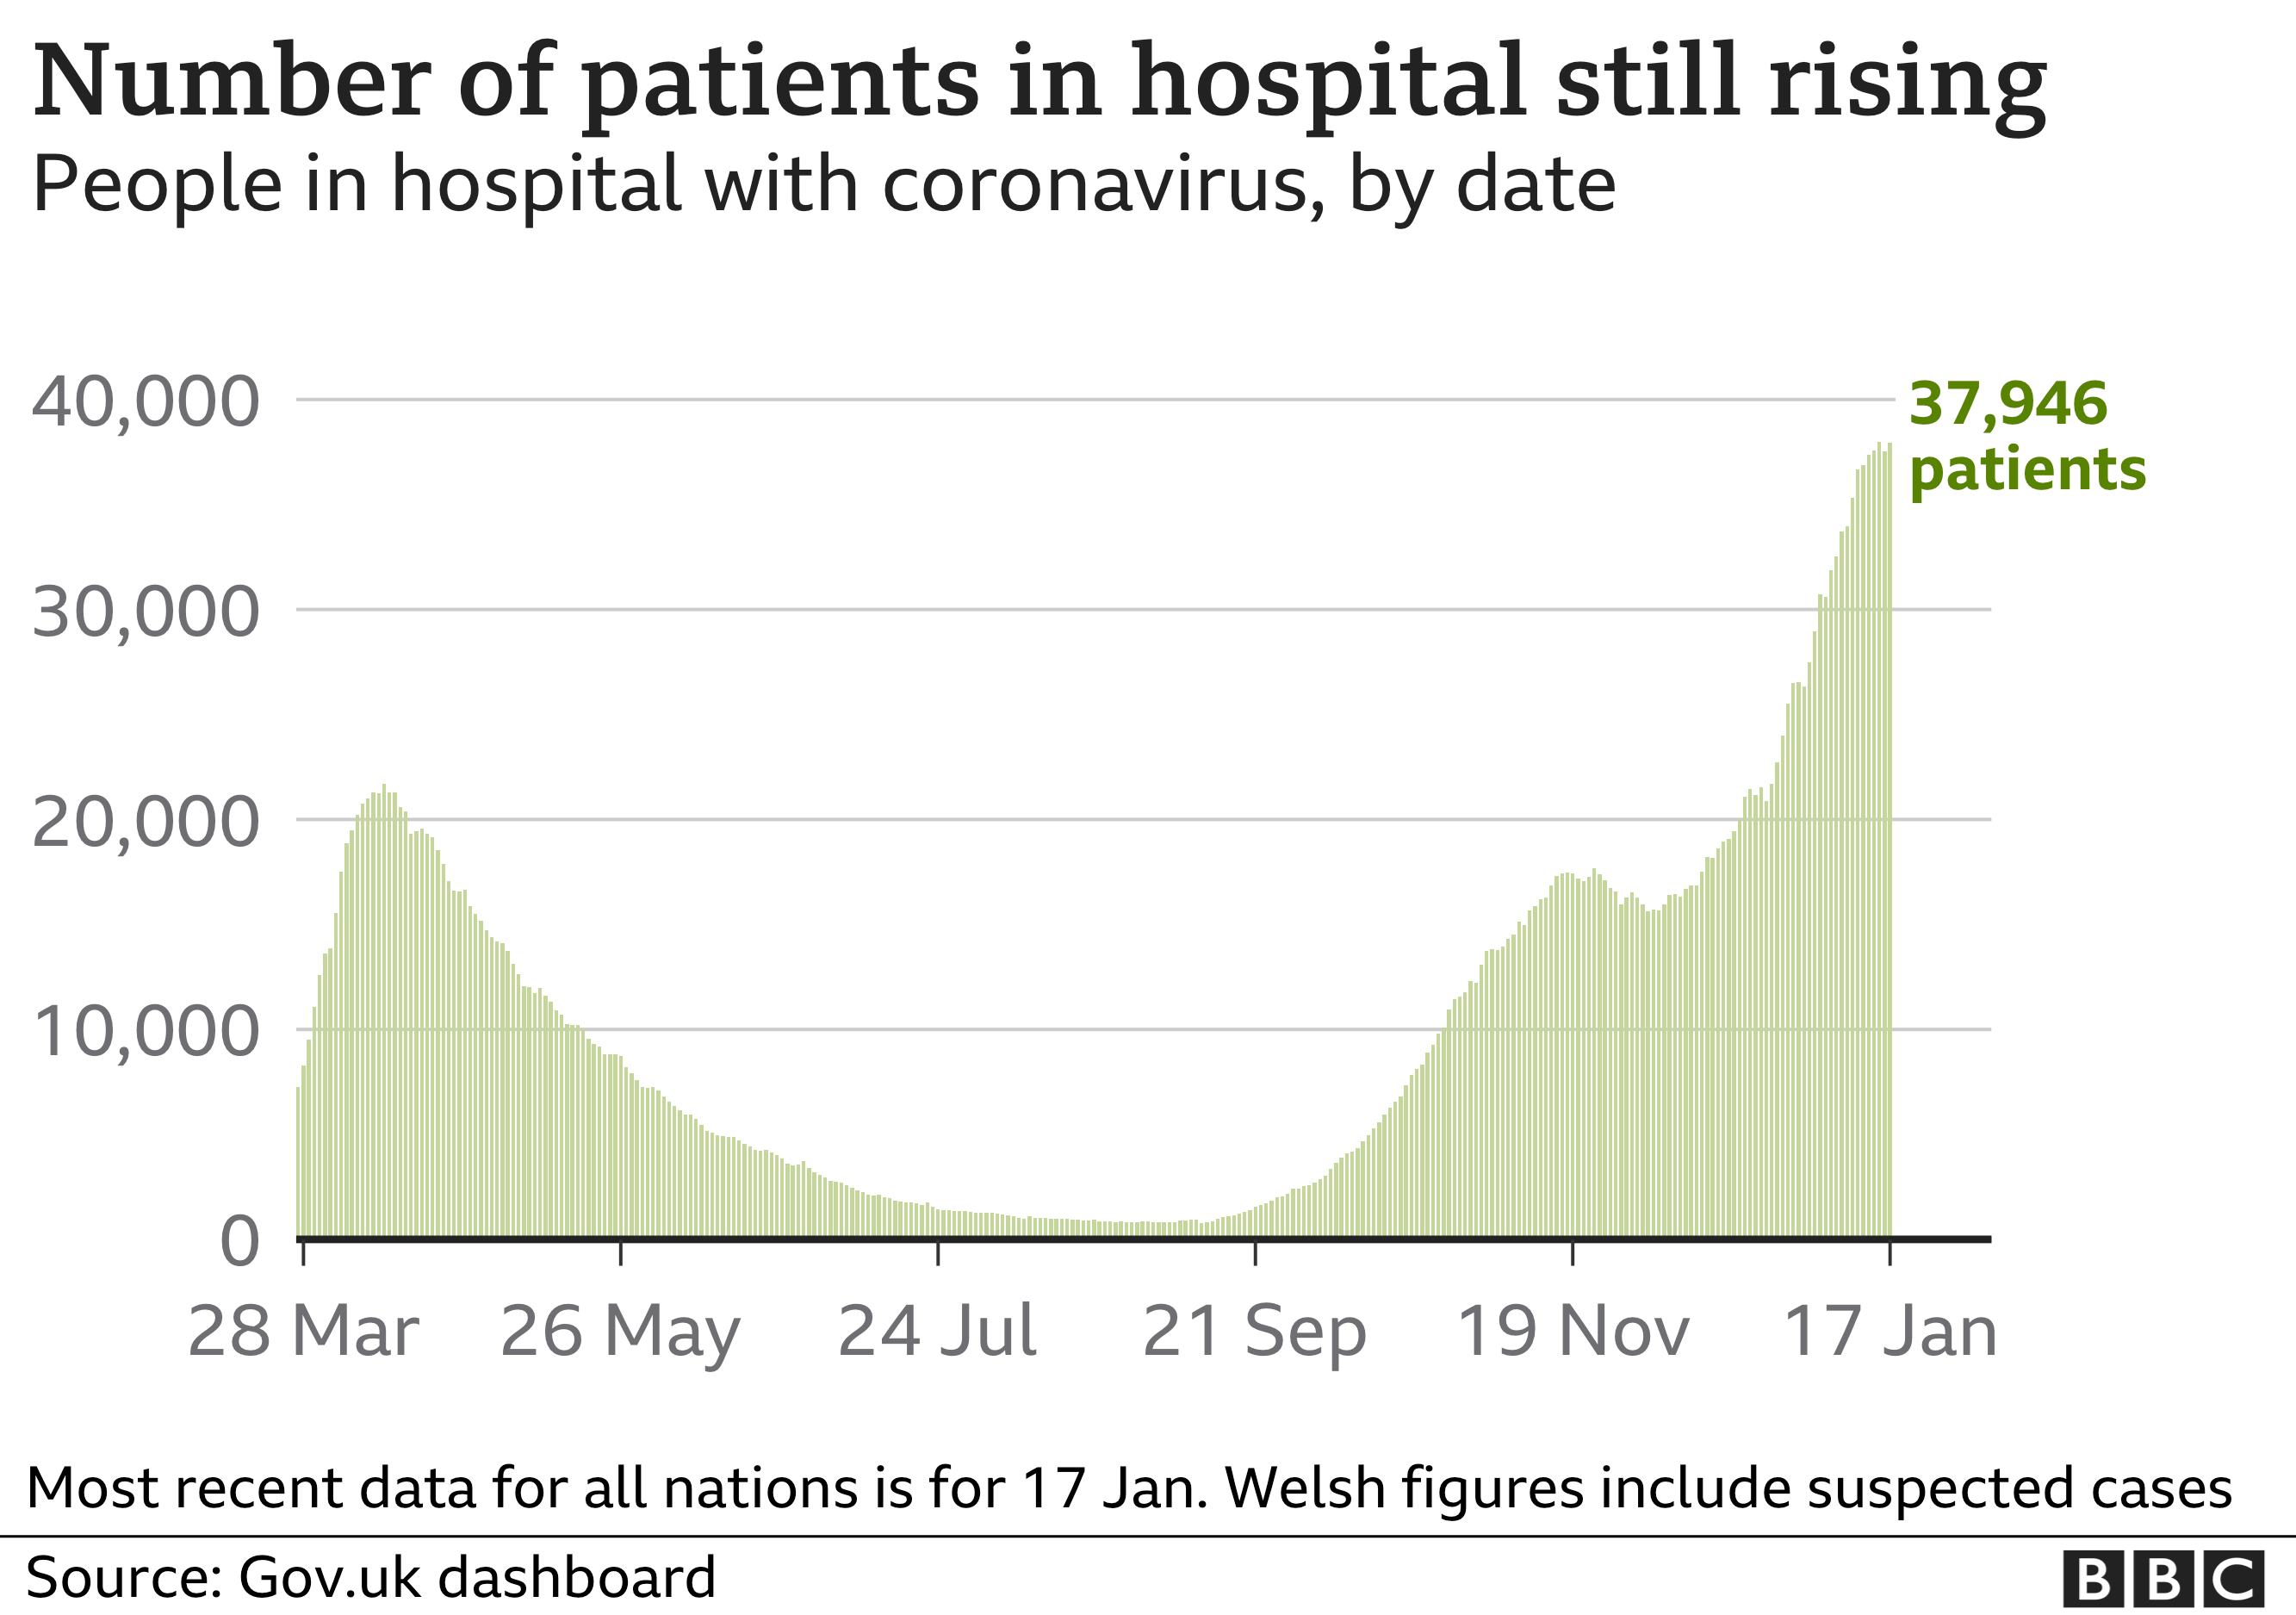 Chart showing the number of coronavirus patients in hospital in the UK. Updated 19 Jan.